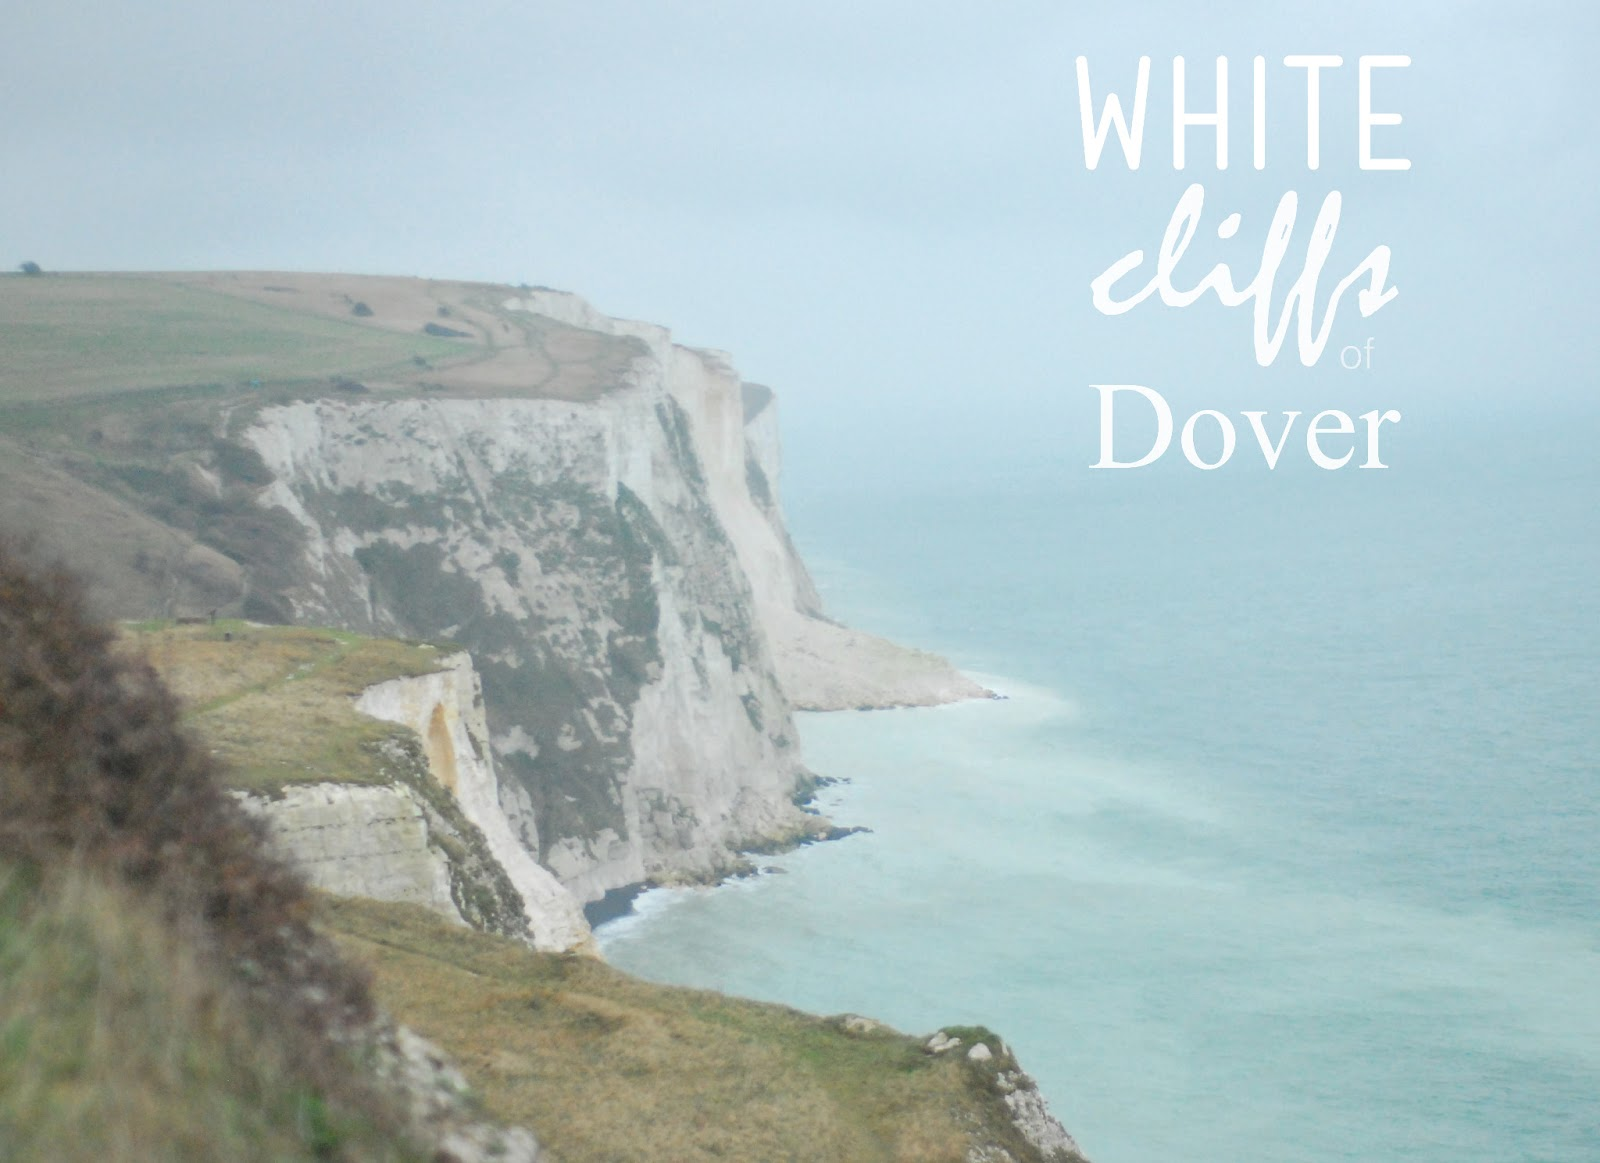 Lady Katherine Sims: On the White Cliffs of Dover